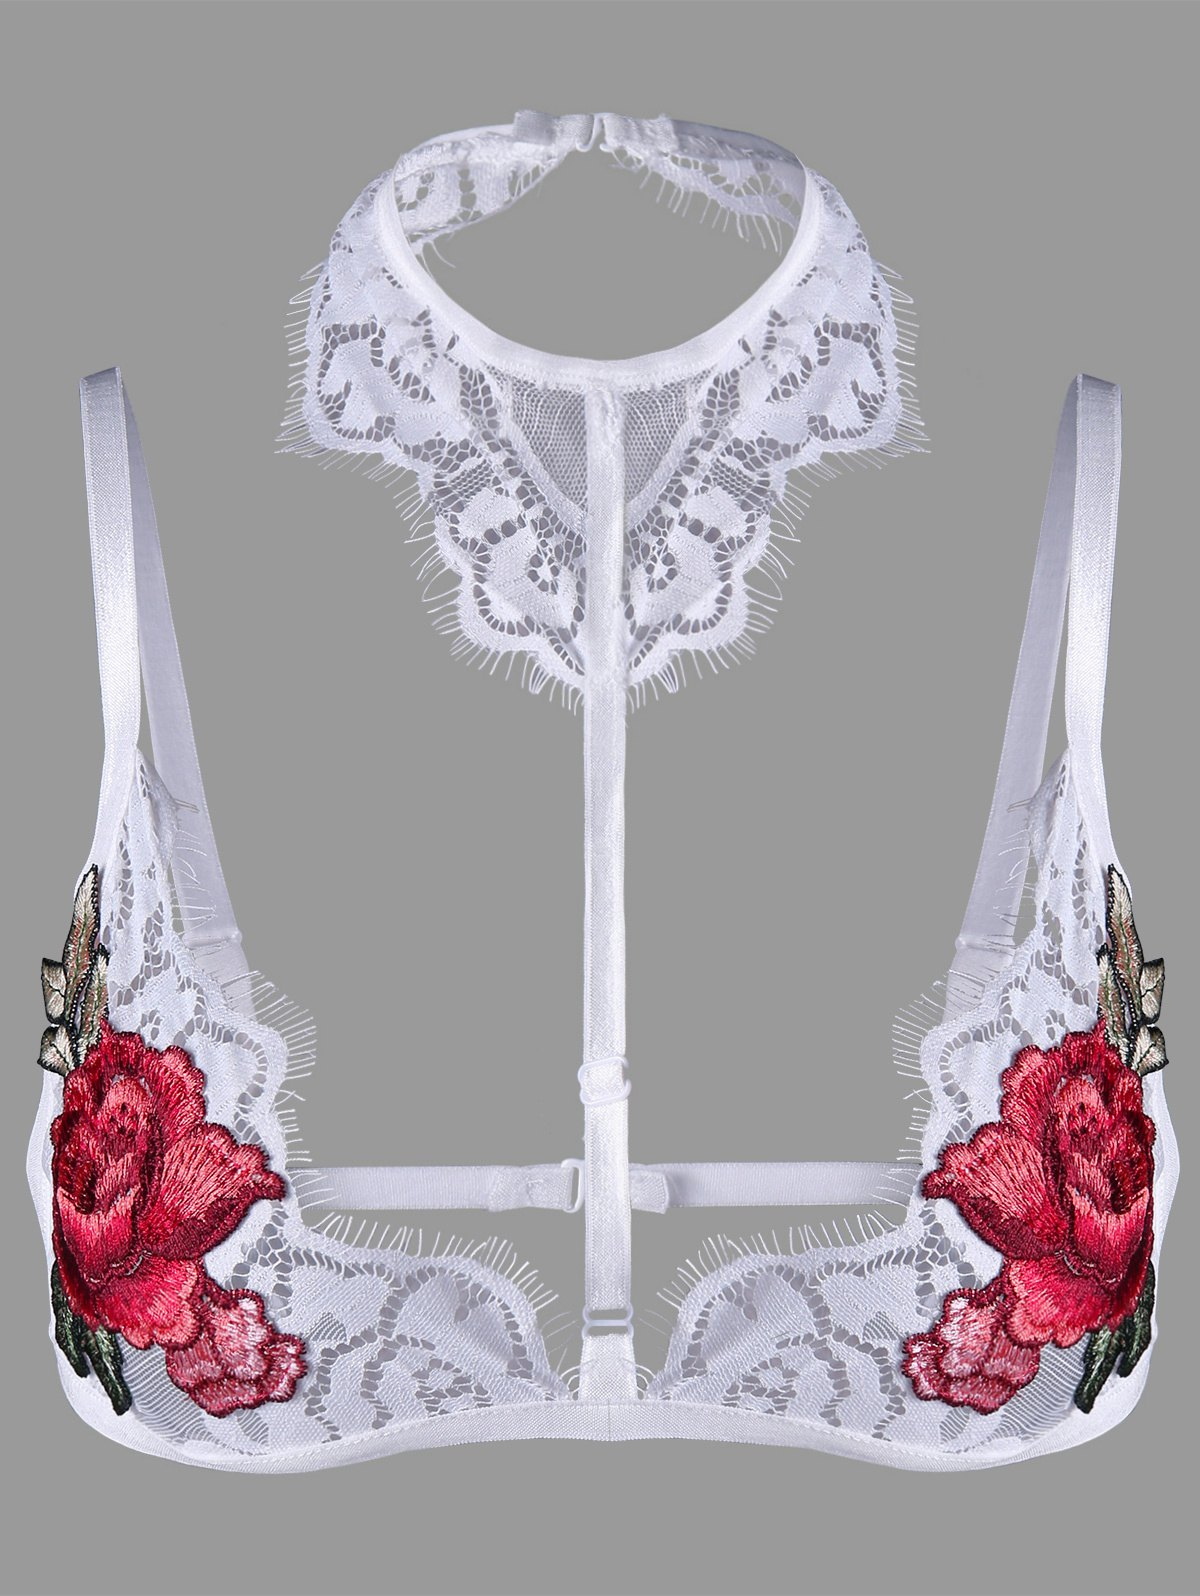 Lace Flower Embroidered Choker Bralette - WHITE XL